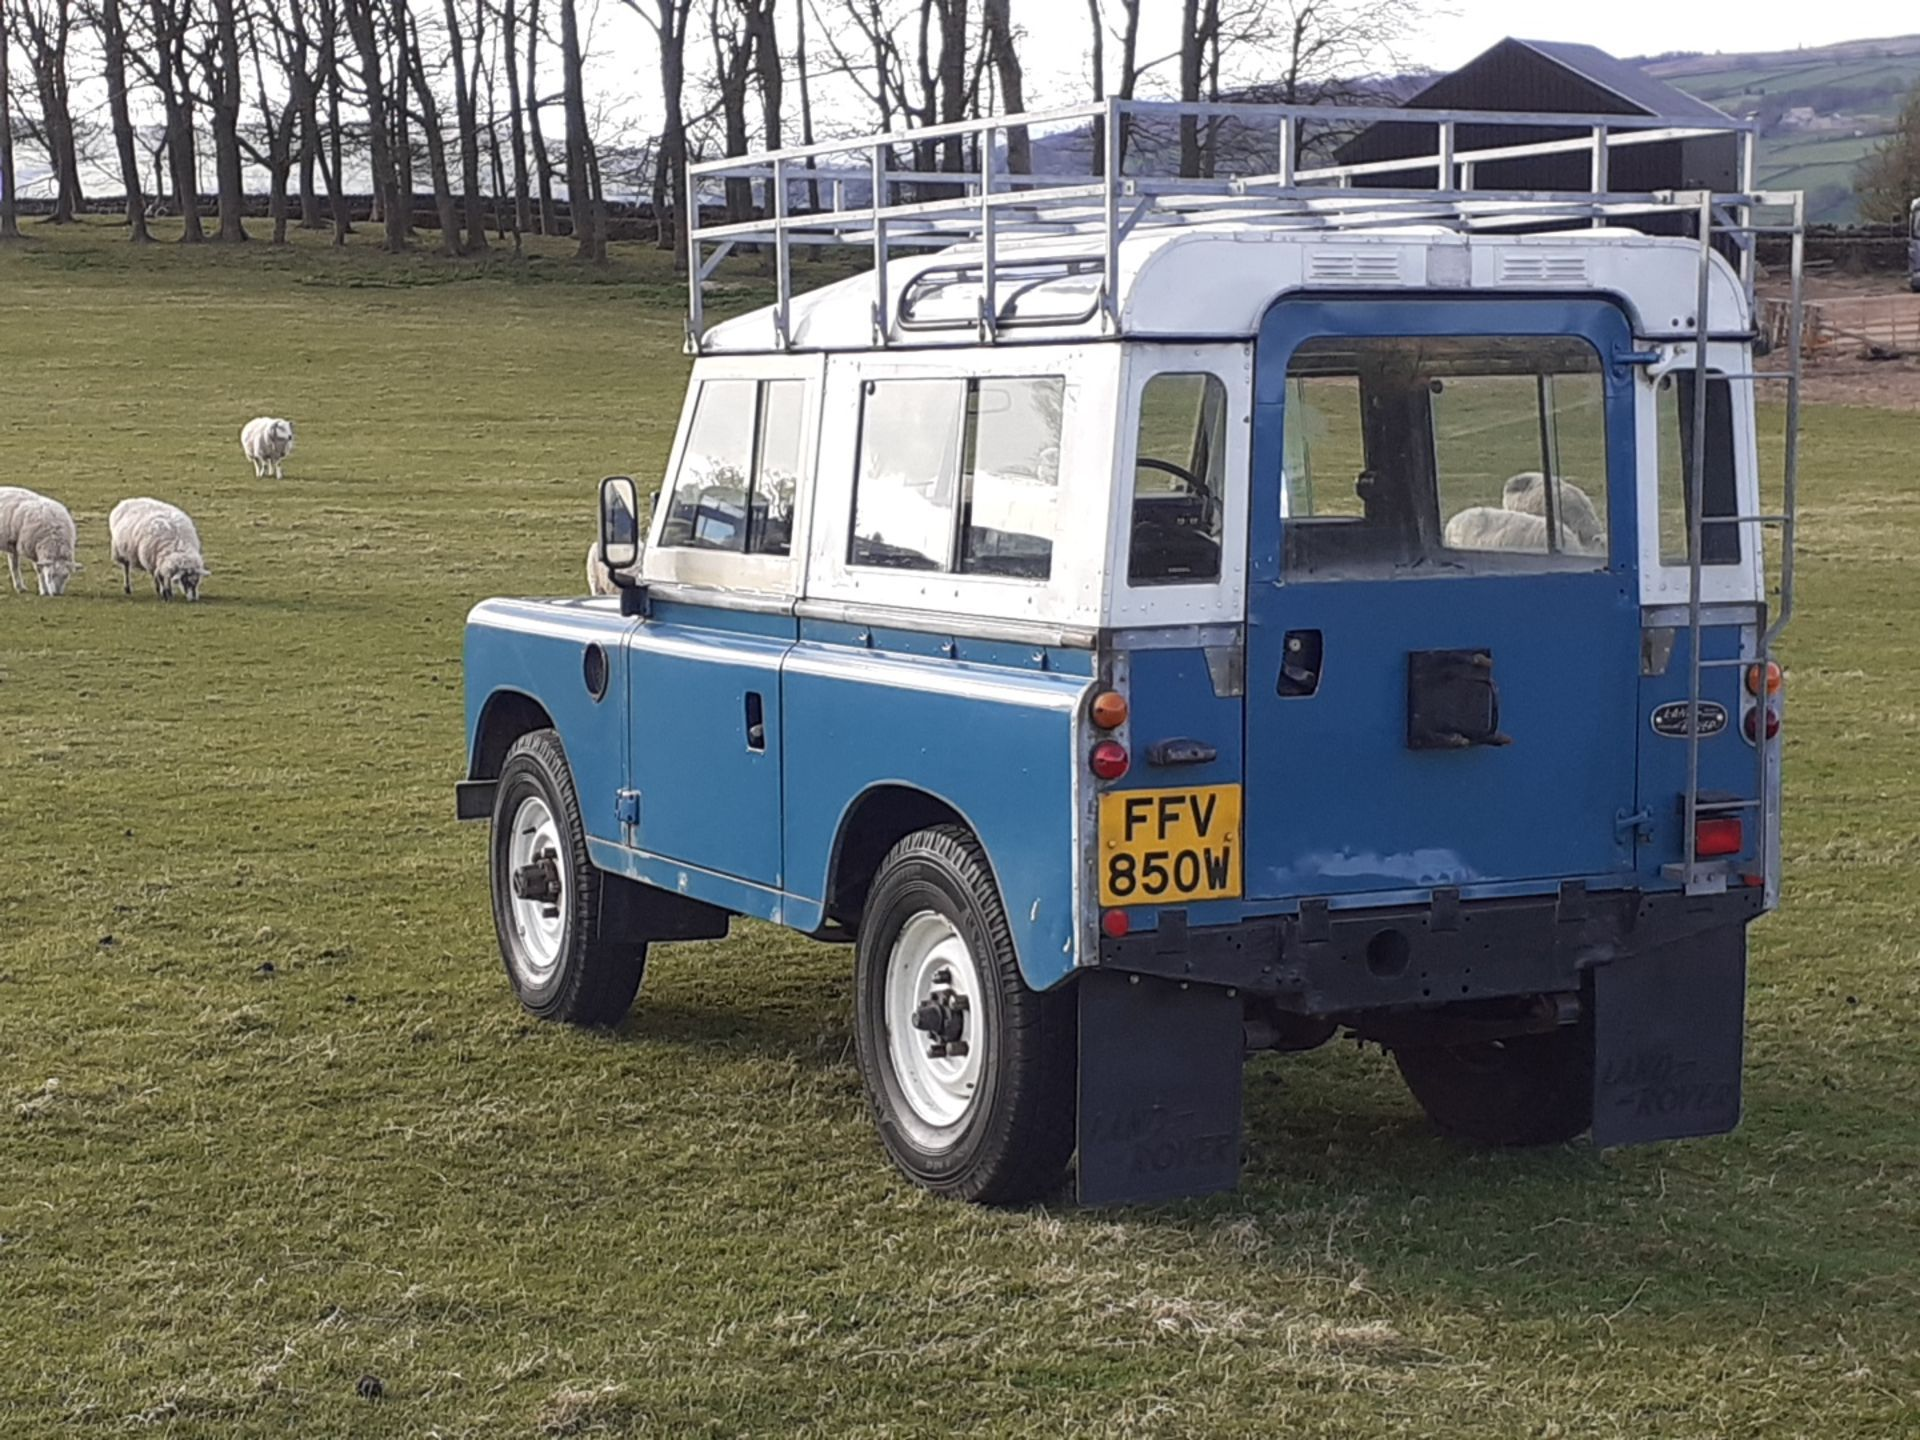 1980 LAND ROVER SERIES III CLASSIC STATION WAGON, TAX AND MOT EXEMPT *NO VAT* - Image 8 of 22